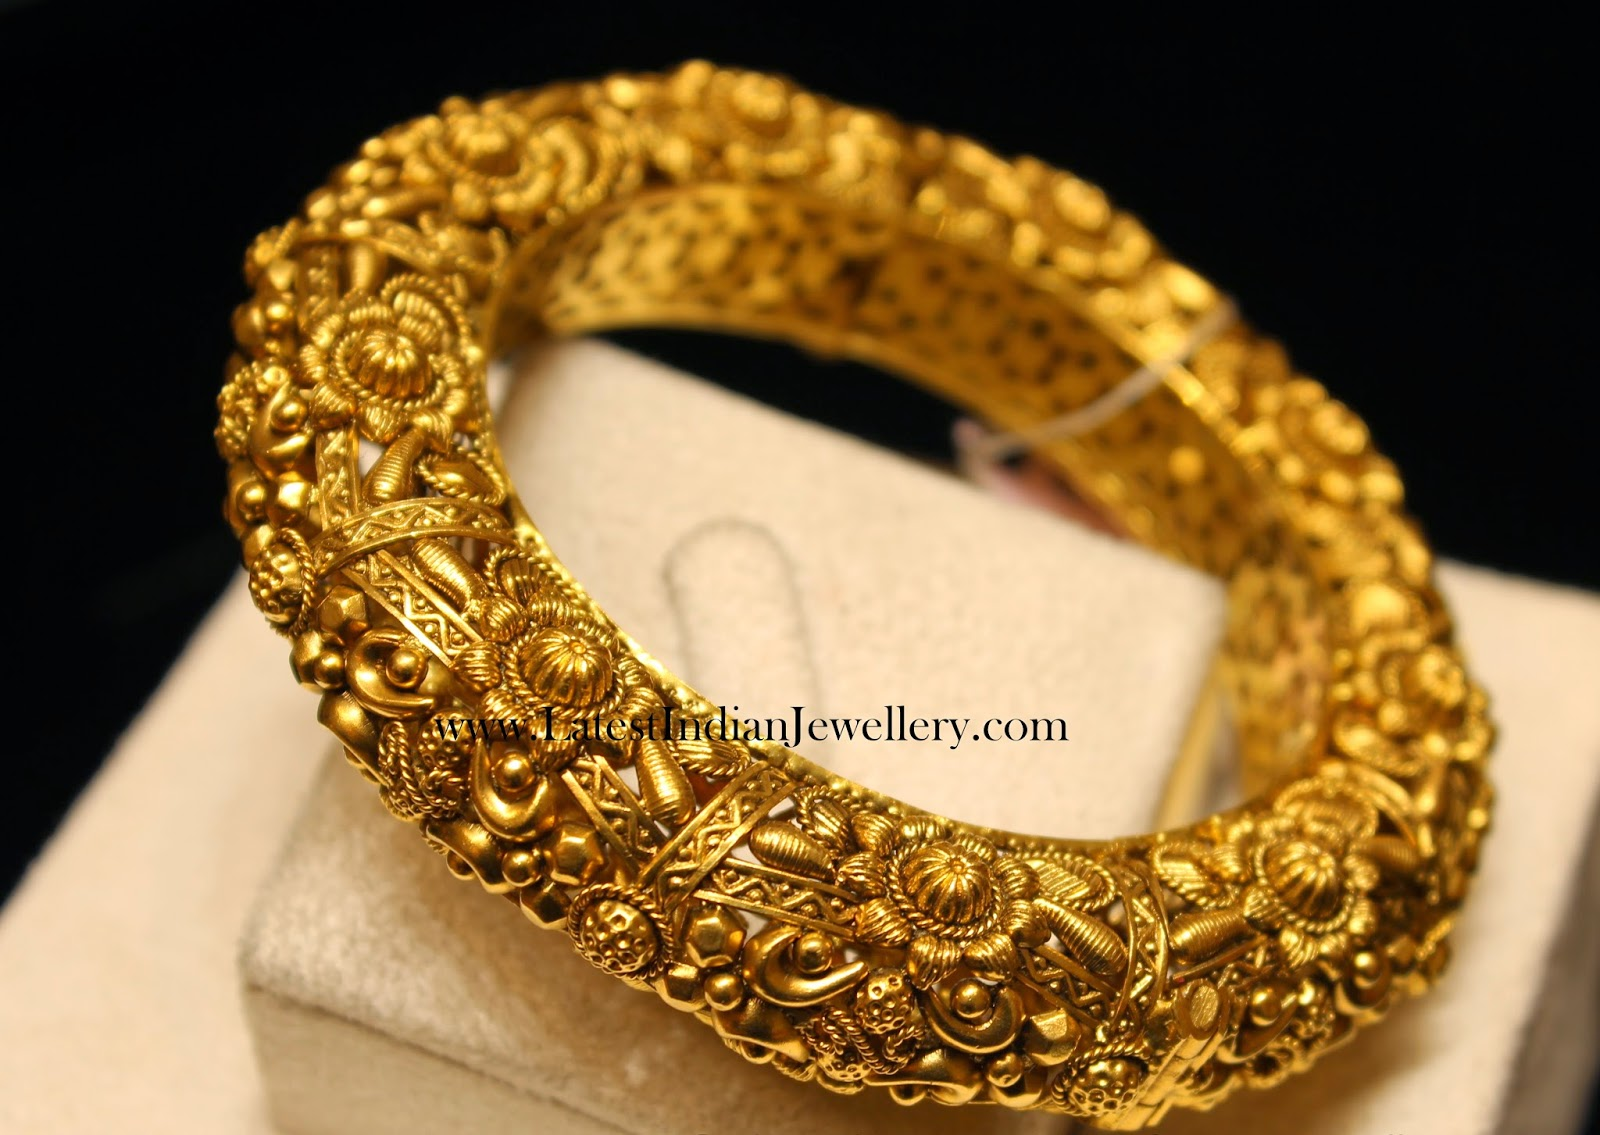 Royal Gold Kankanam